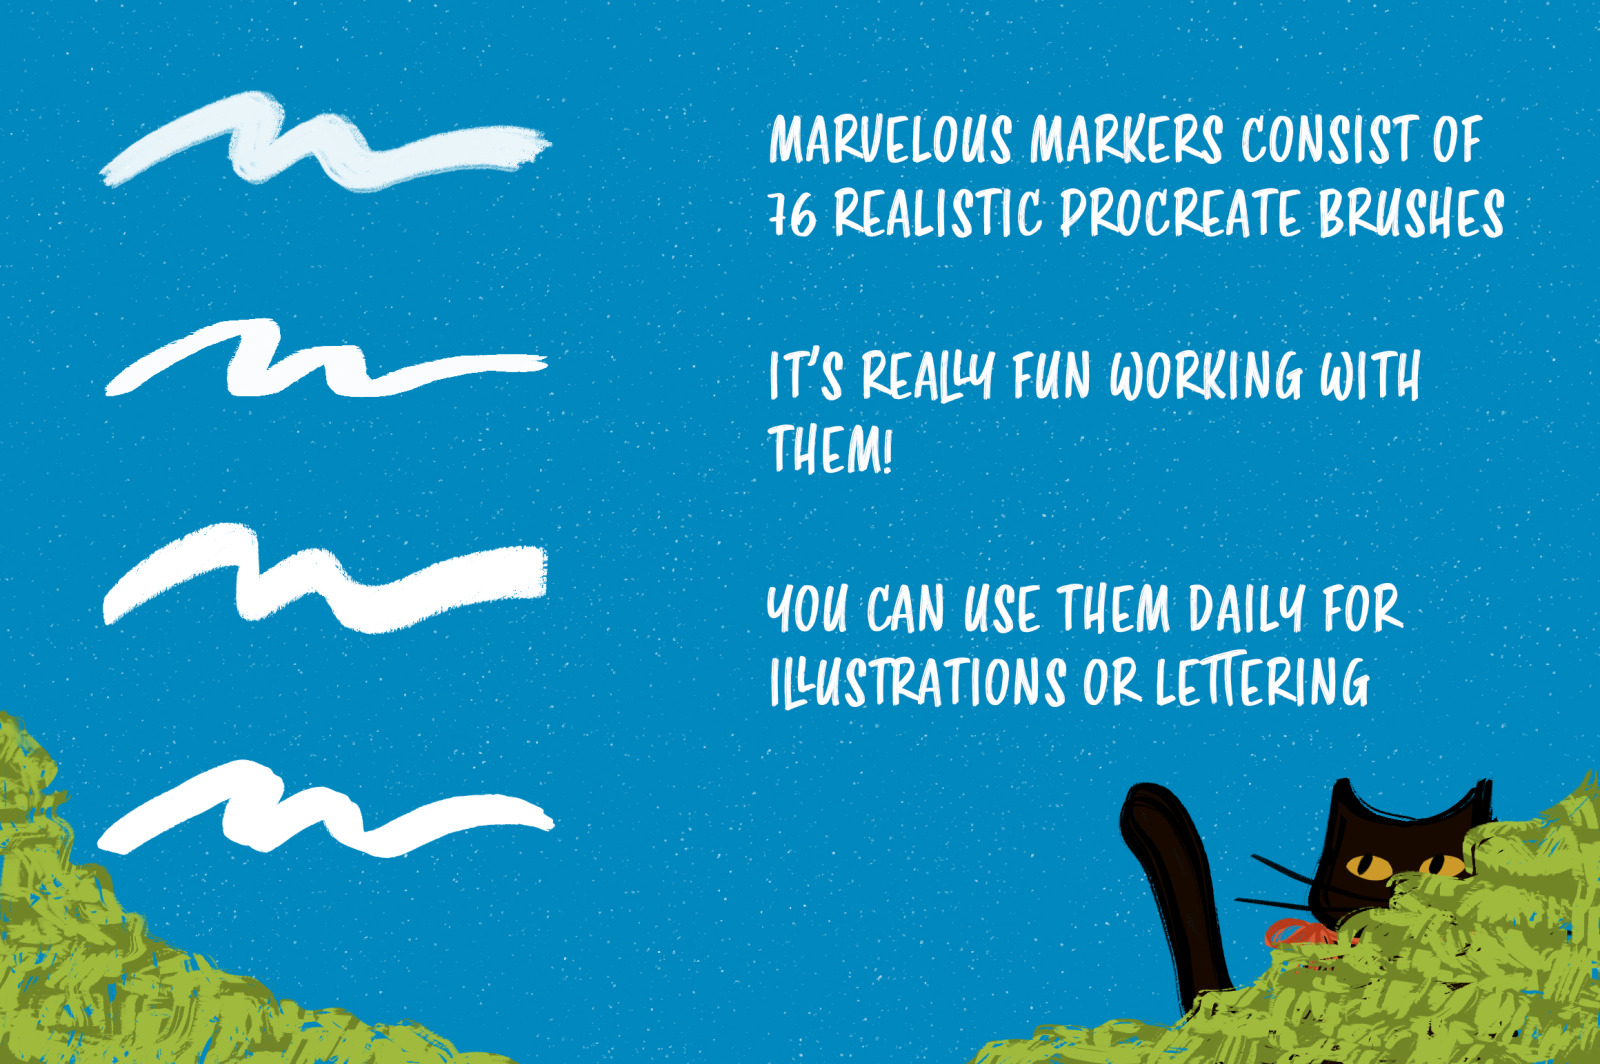 76 Marvelous Markers for Procreate